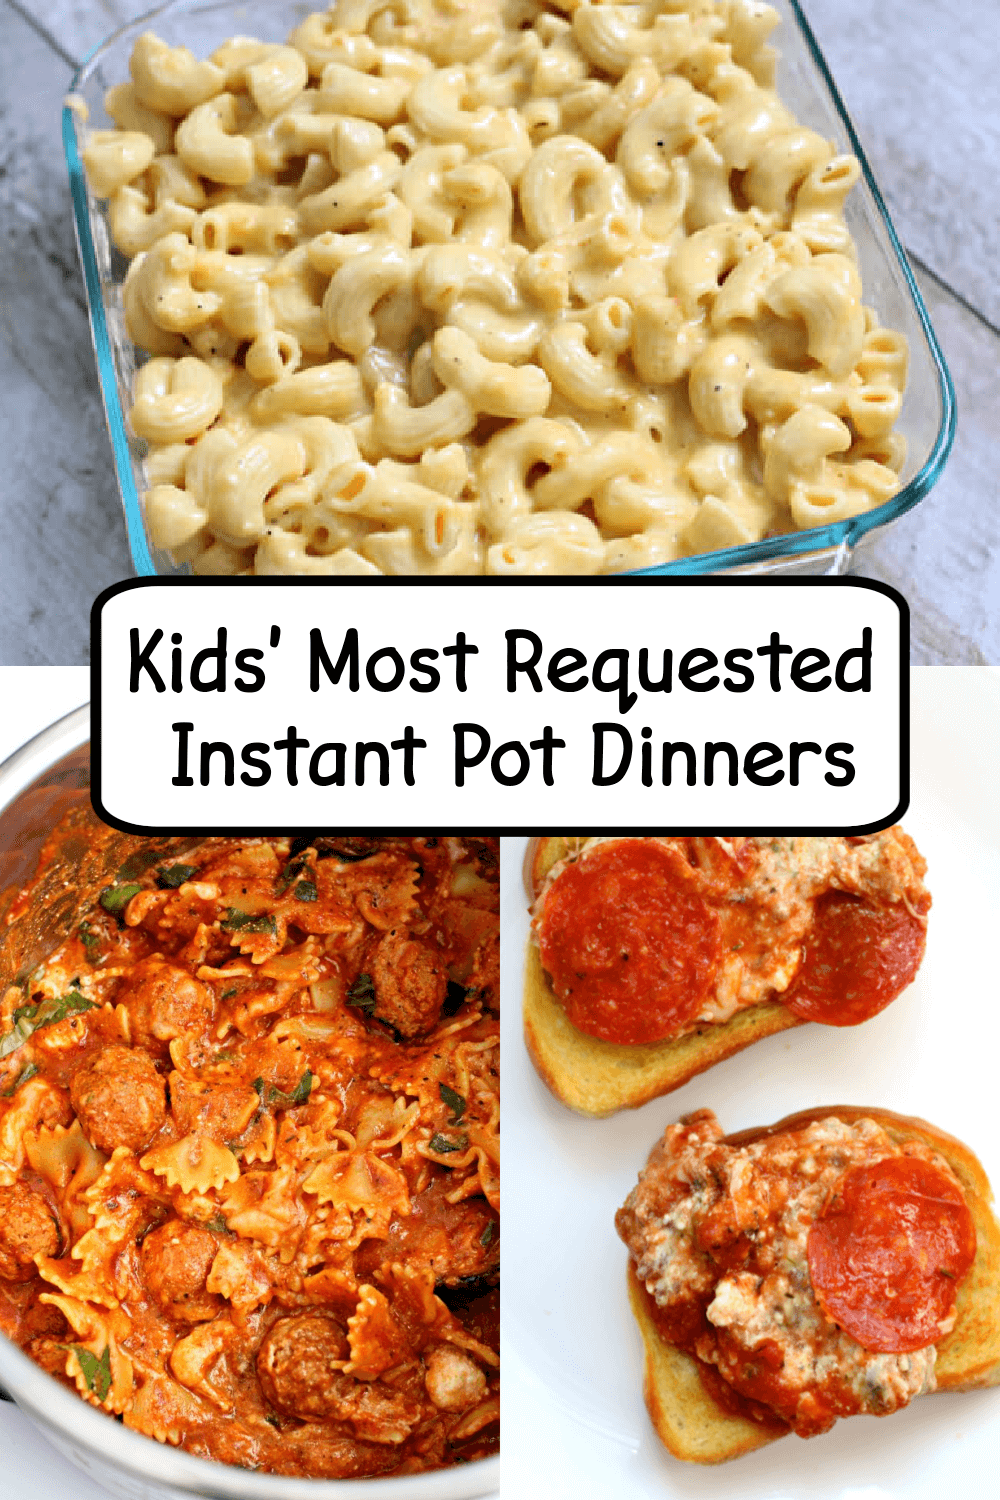 Kids Most Requested Instant Pot Dinners 365 Days Of Slow Cooking And Pressure Cooking